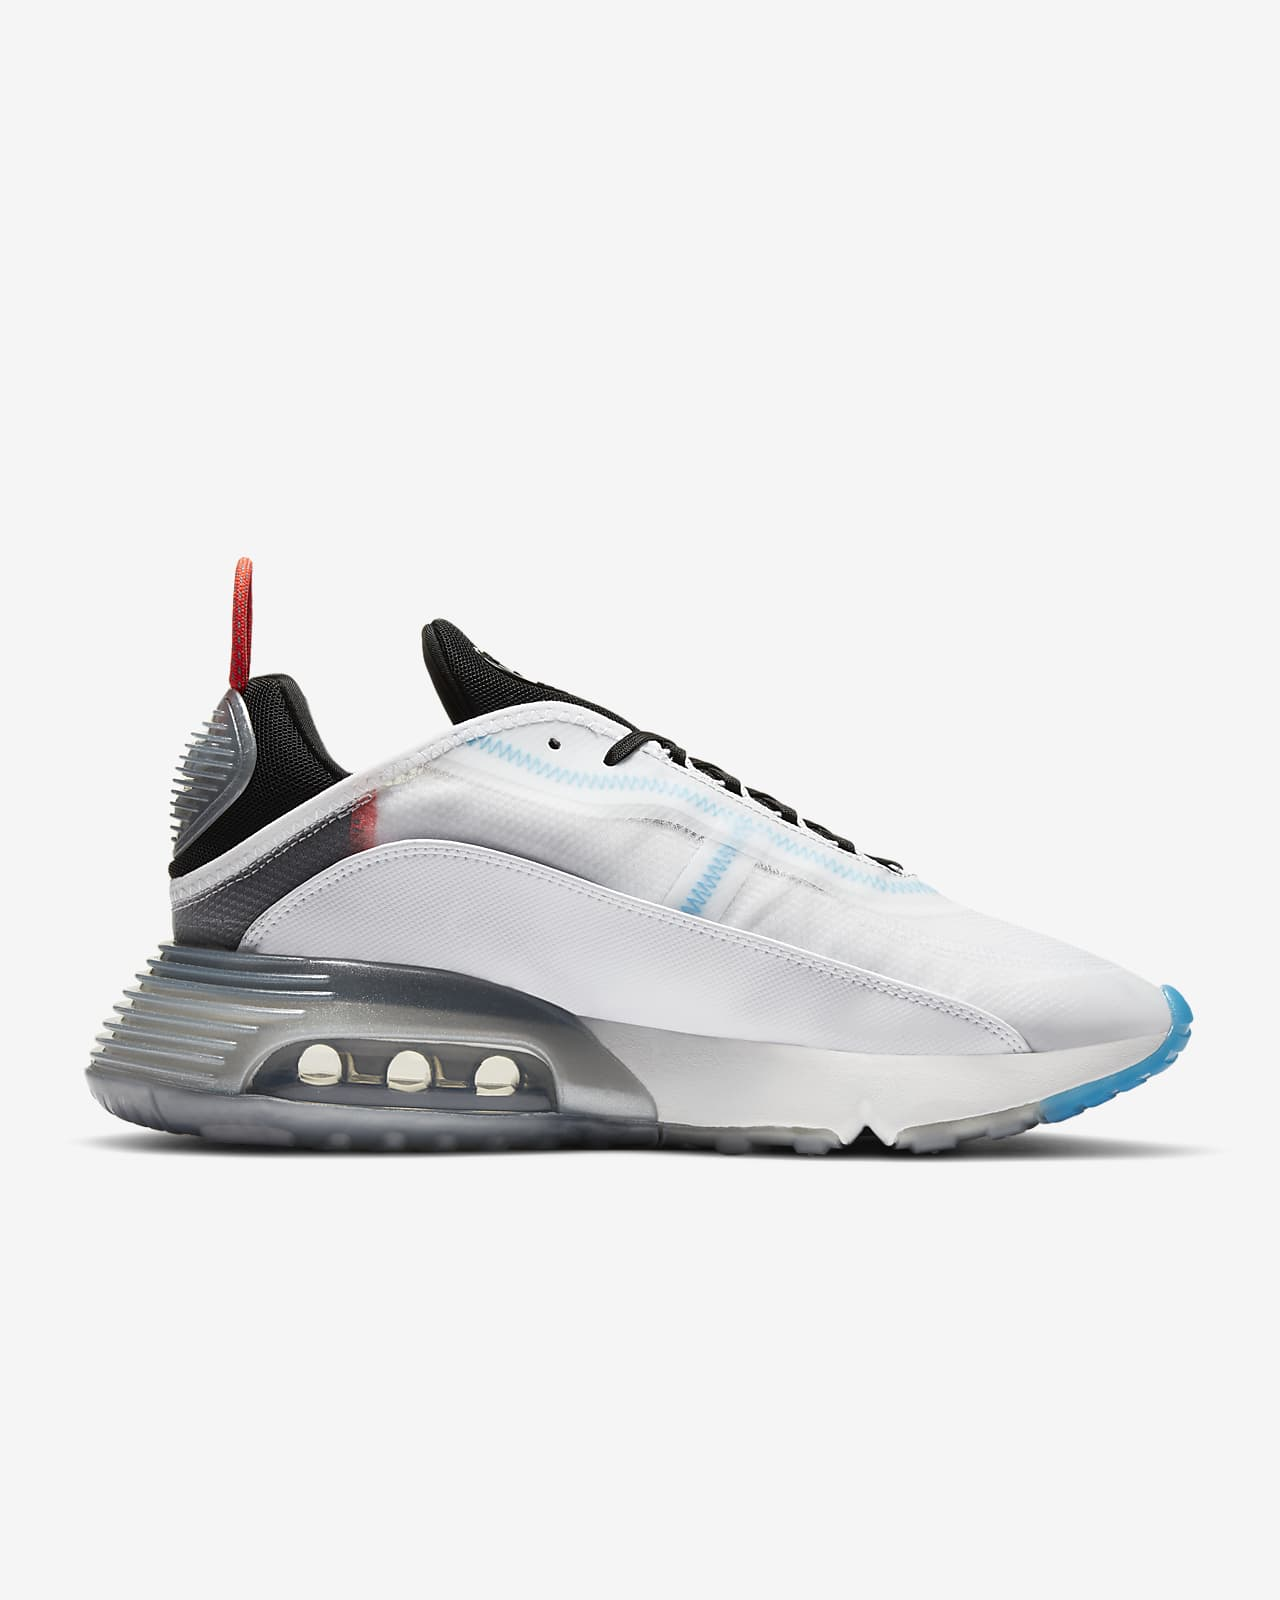 Nike Air Max Retro Future Collection AVAILABLE NOW The